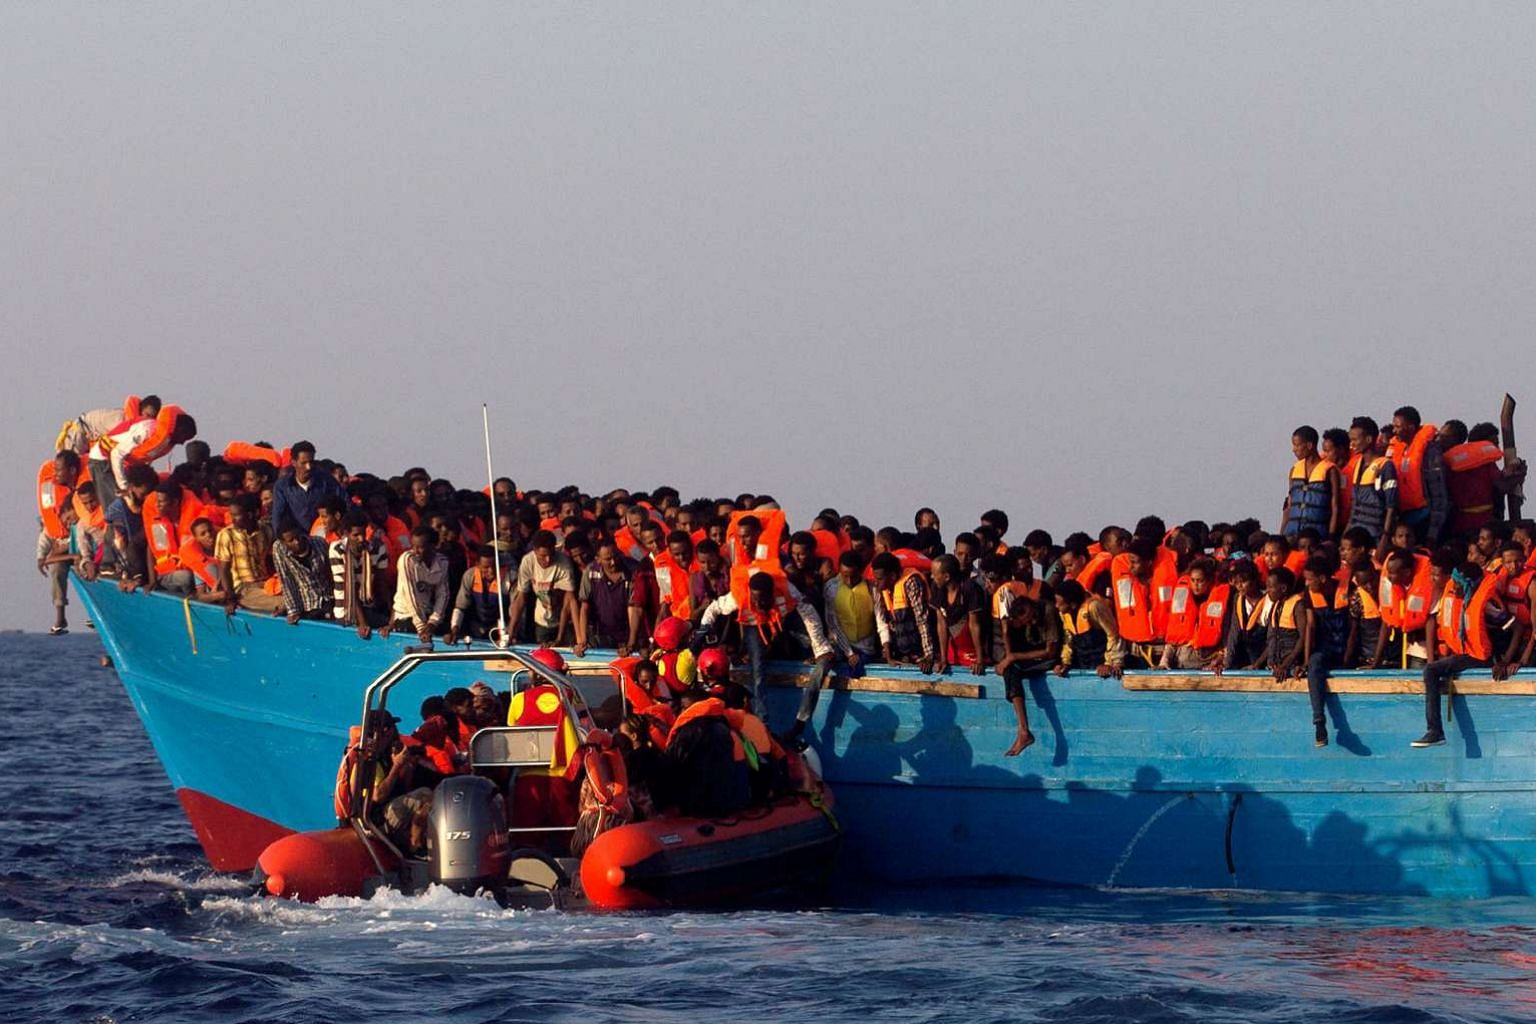 Migrants from Eritrea waiting as a rescue boat approached their overcrowded wooden vessel off the Libyan coast in the Mediterranean Sea on Monday. Forty rescue missions were carried out on Monday, making it one of the busiest days of life-saving in recent